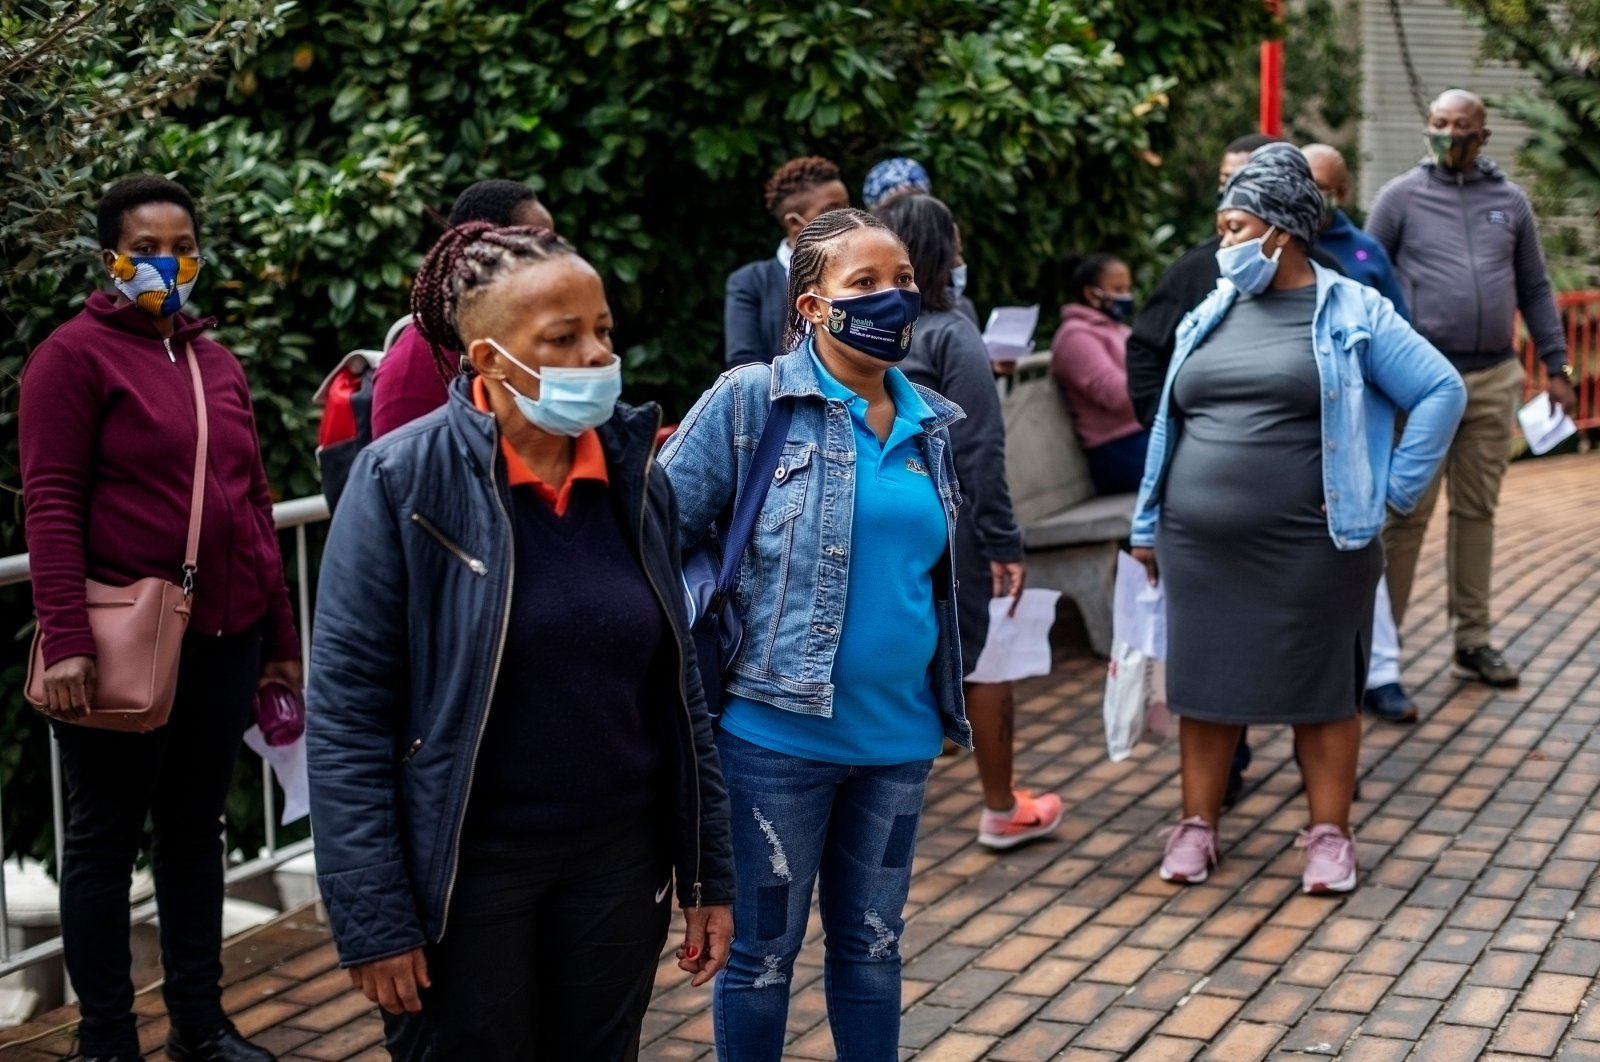 Demonstrators gather during a protest organized by the support staff at Helen Joseph Hospital to urge more testing for COVID-19 and a lack of personal protective equipment, Johannesburg, South Africa, May 25, 2020. (AFP Photo)